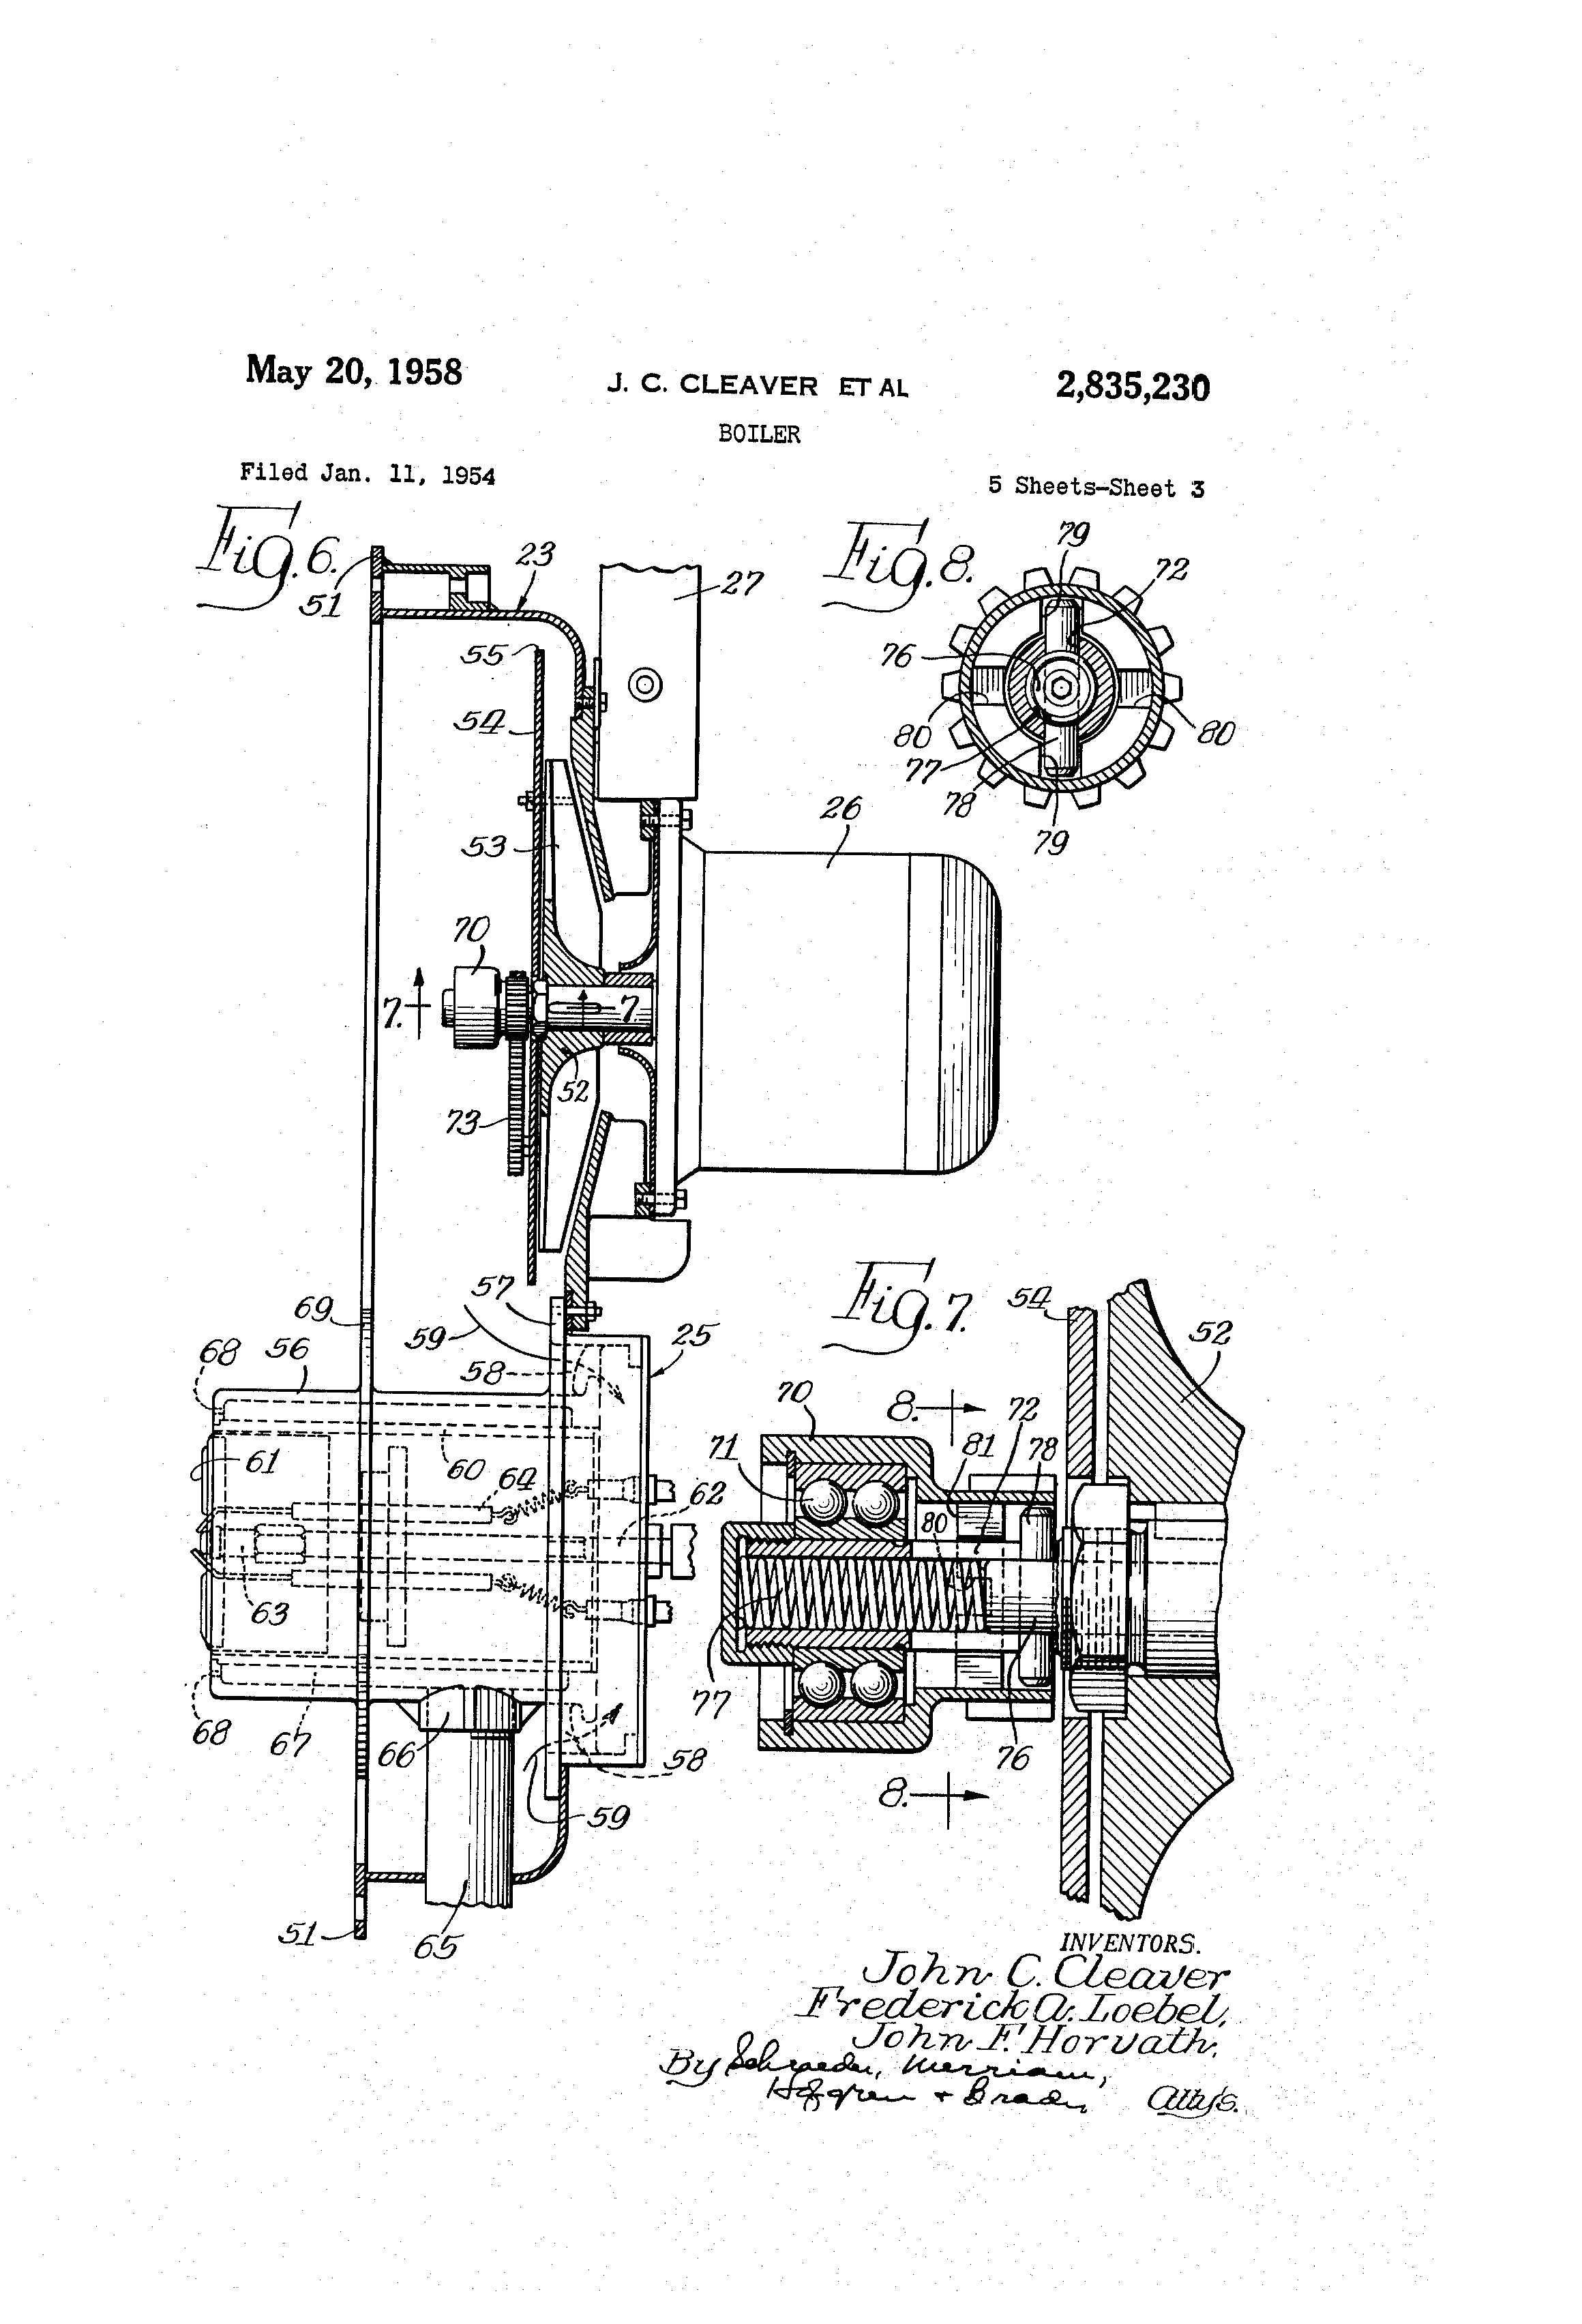 cleaver brooks auto electrical wiring diagrampatent us2835230 boiler